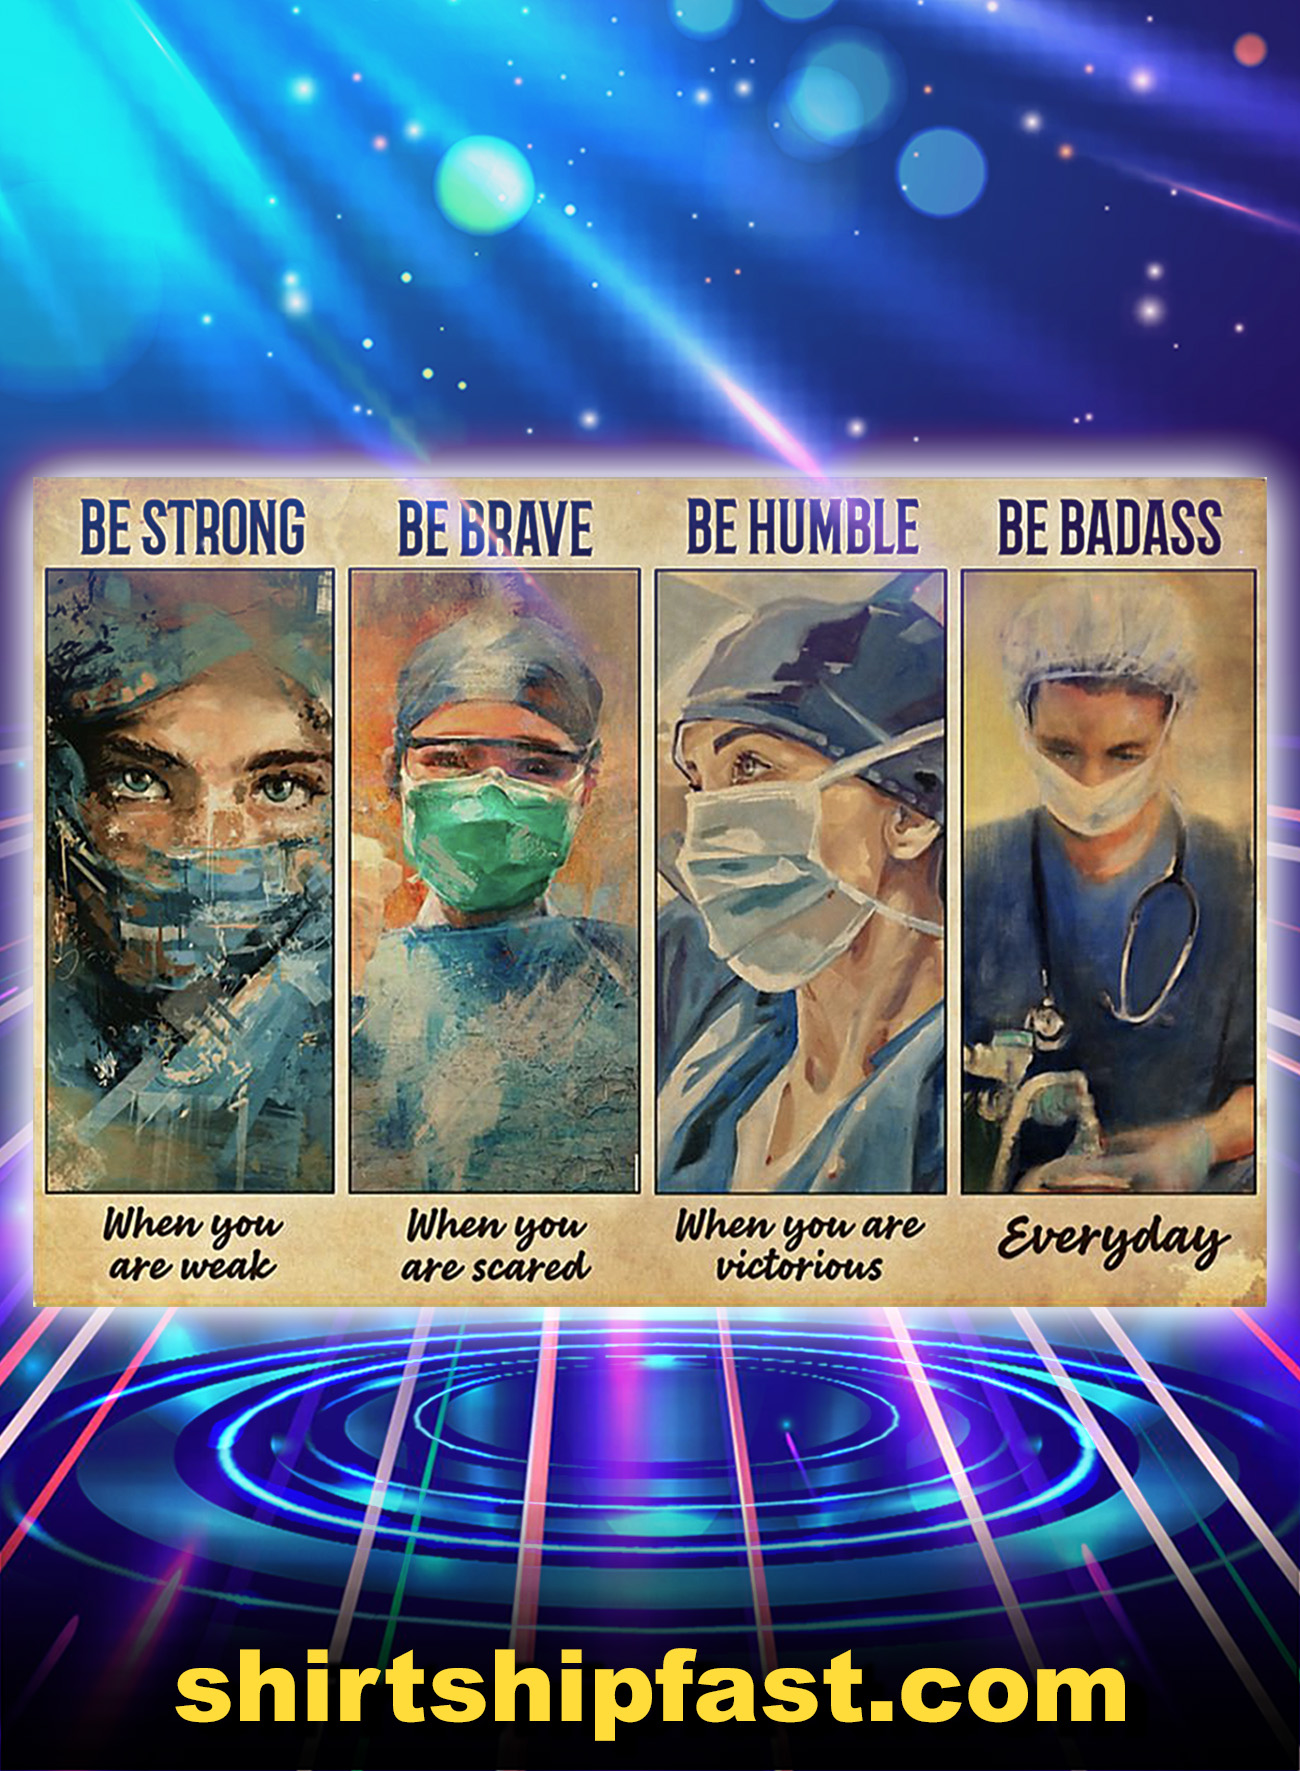 Female physicians be strong be brave be humble be badass poster - A1